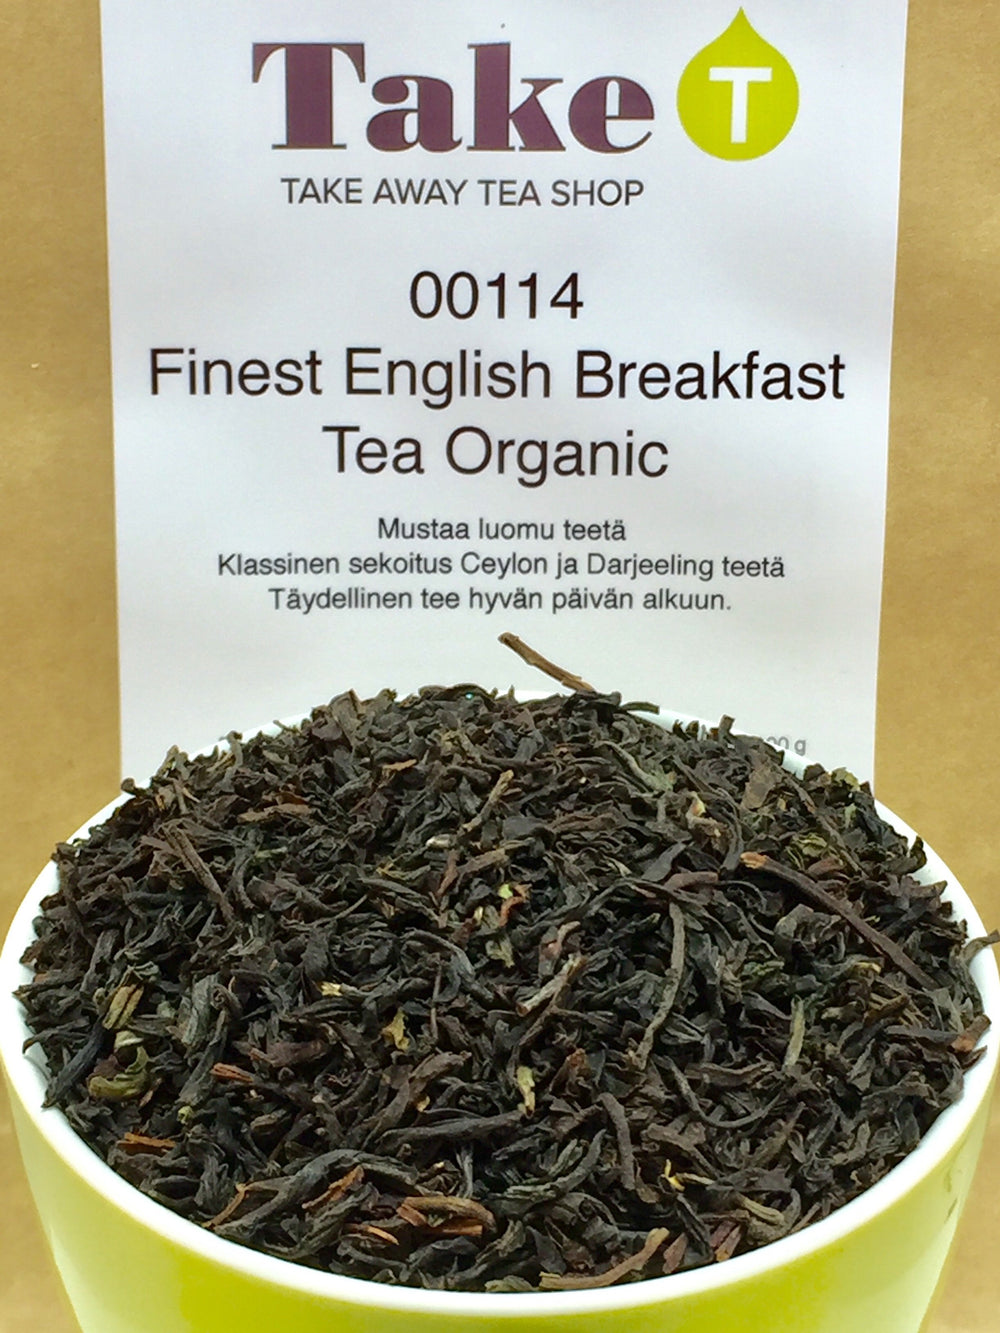 Finest English Breakfast Tea Organic